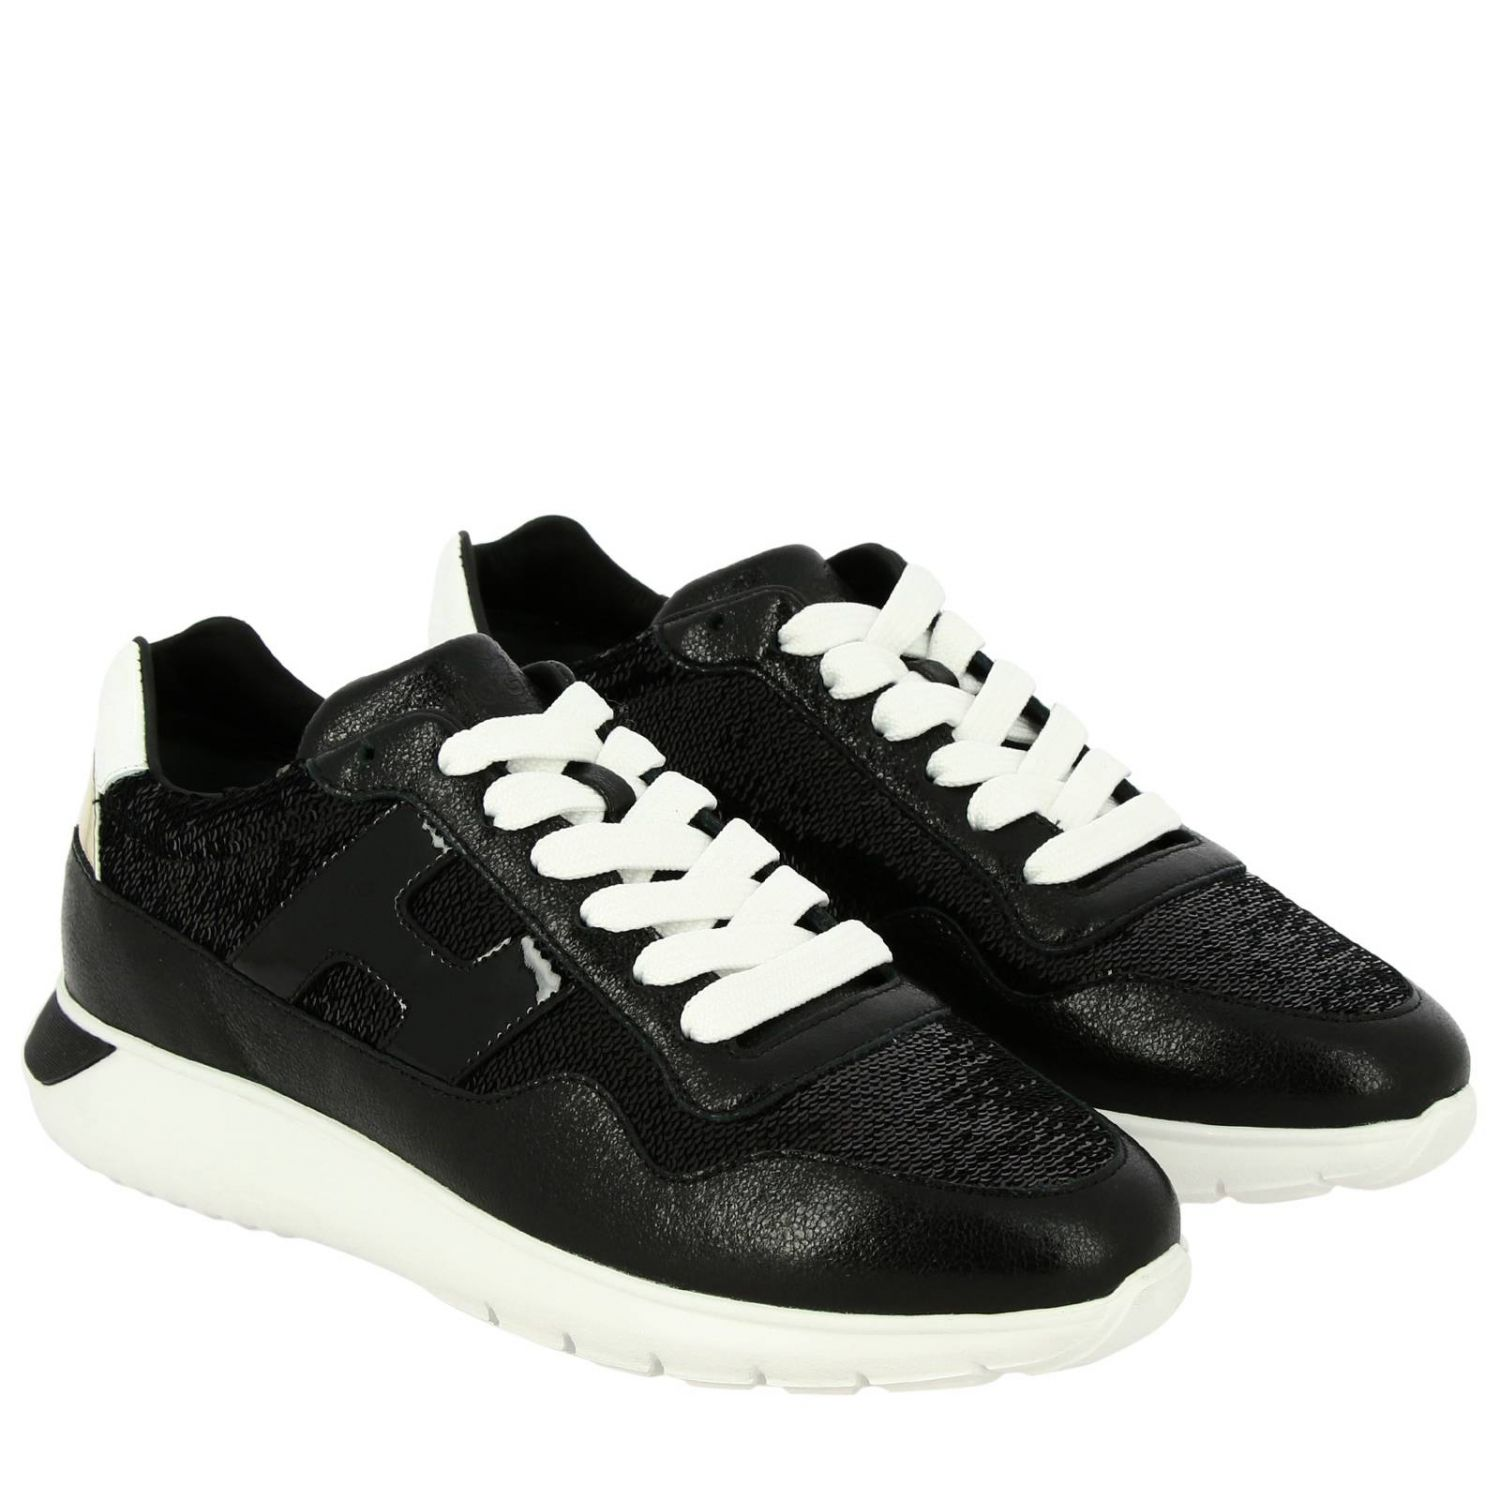 Cube Hogan leather and sequins sneakers with H and Sport sole black 2